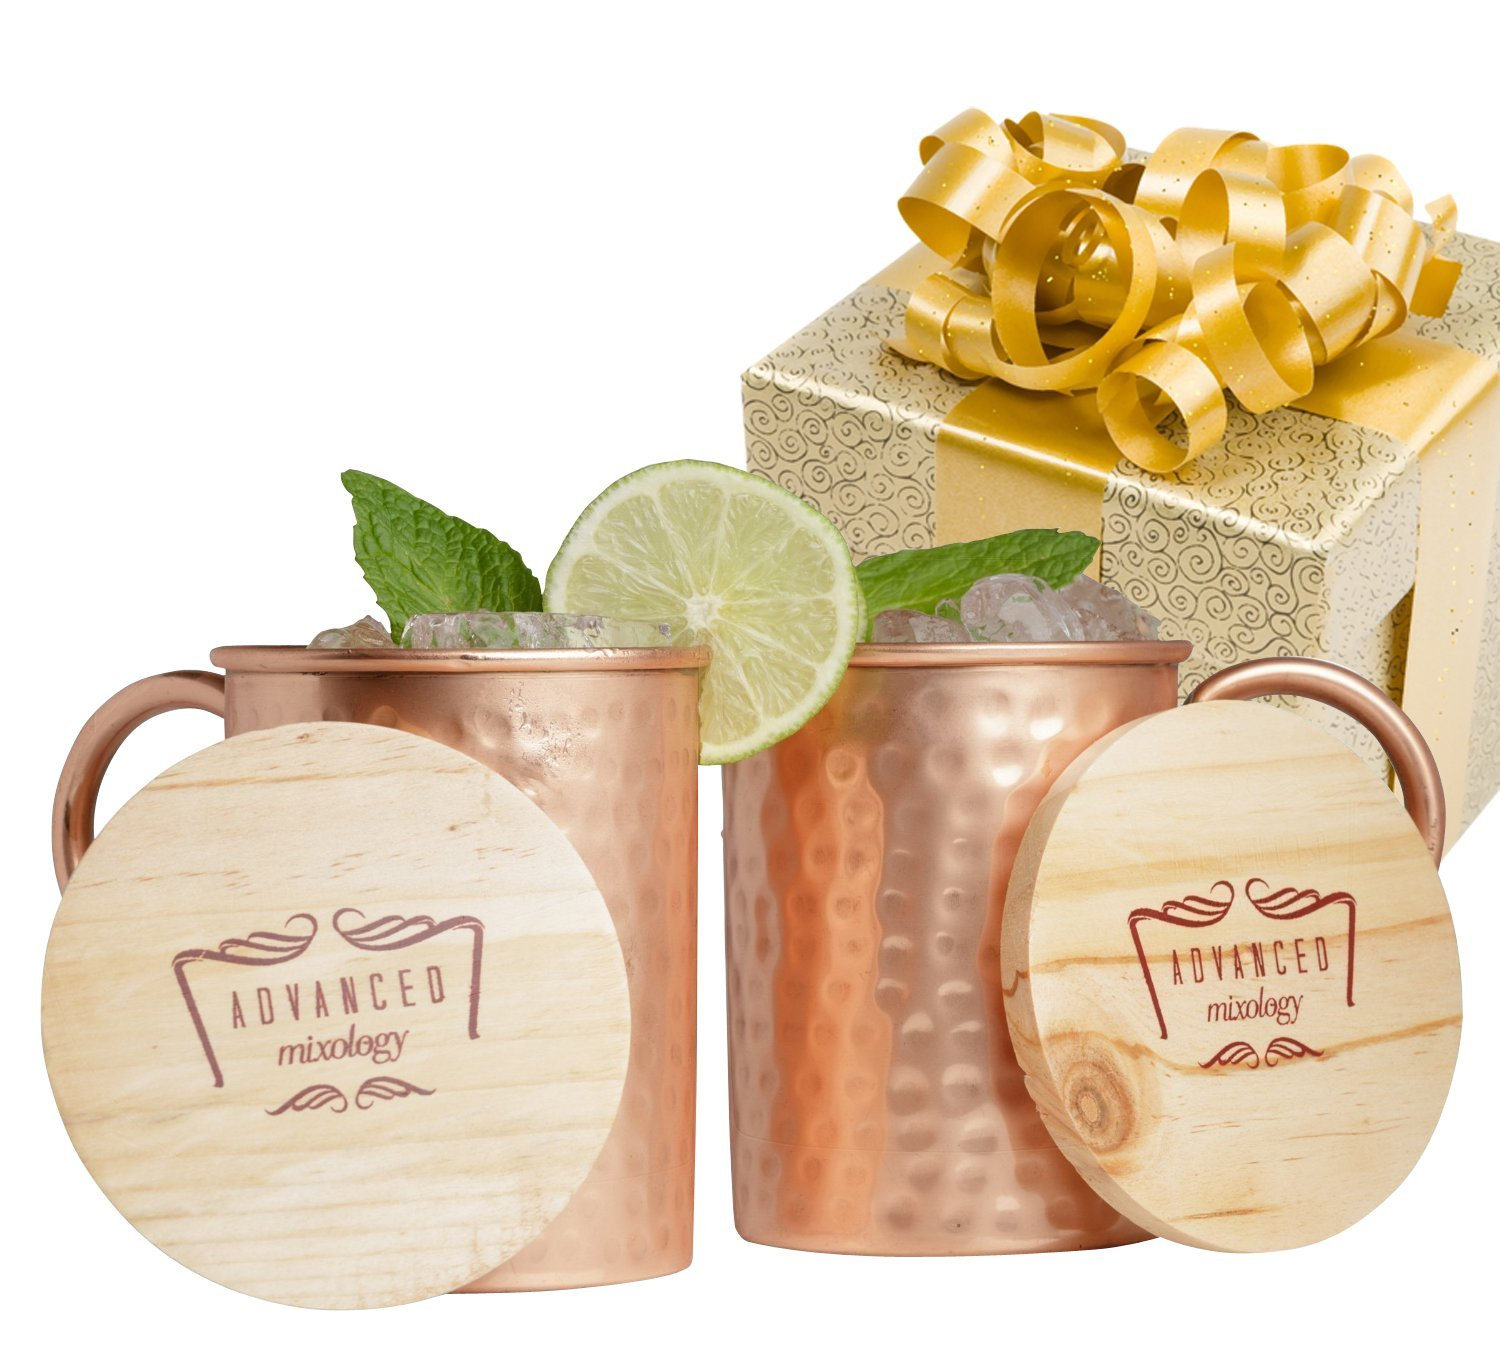 Advanced Mixology Moscow Mule Copper Mugs - 100% Pure Copper, 16 Ounce Set of 2 with 2 Artisan Hand Crafted Wooden Coasters by Advanced Mixology